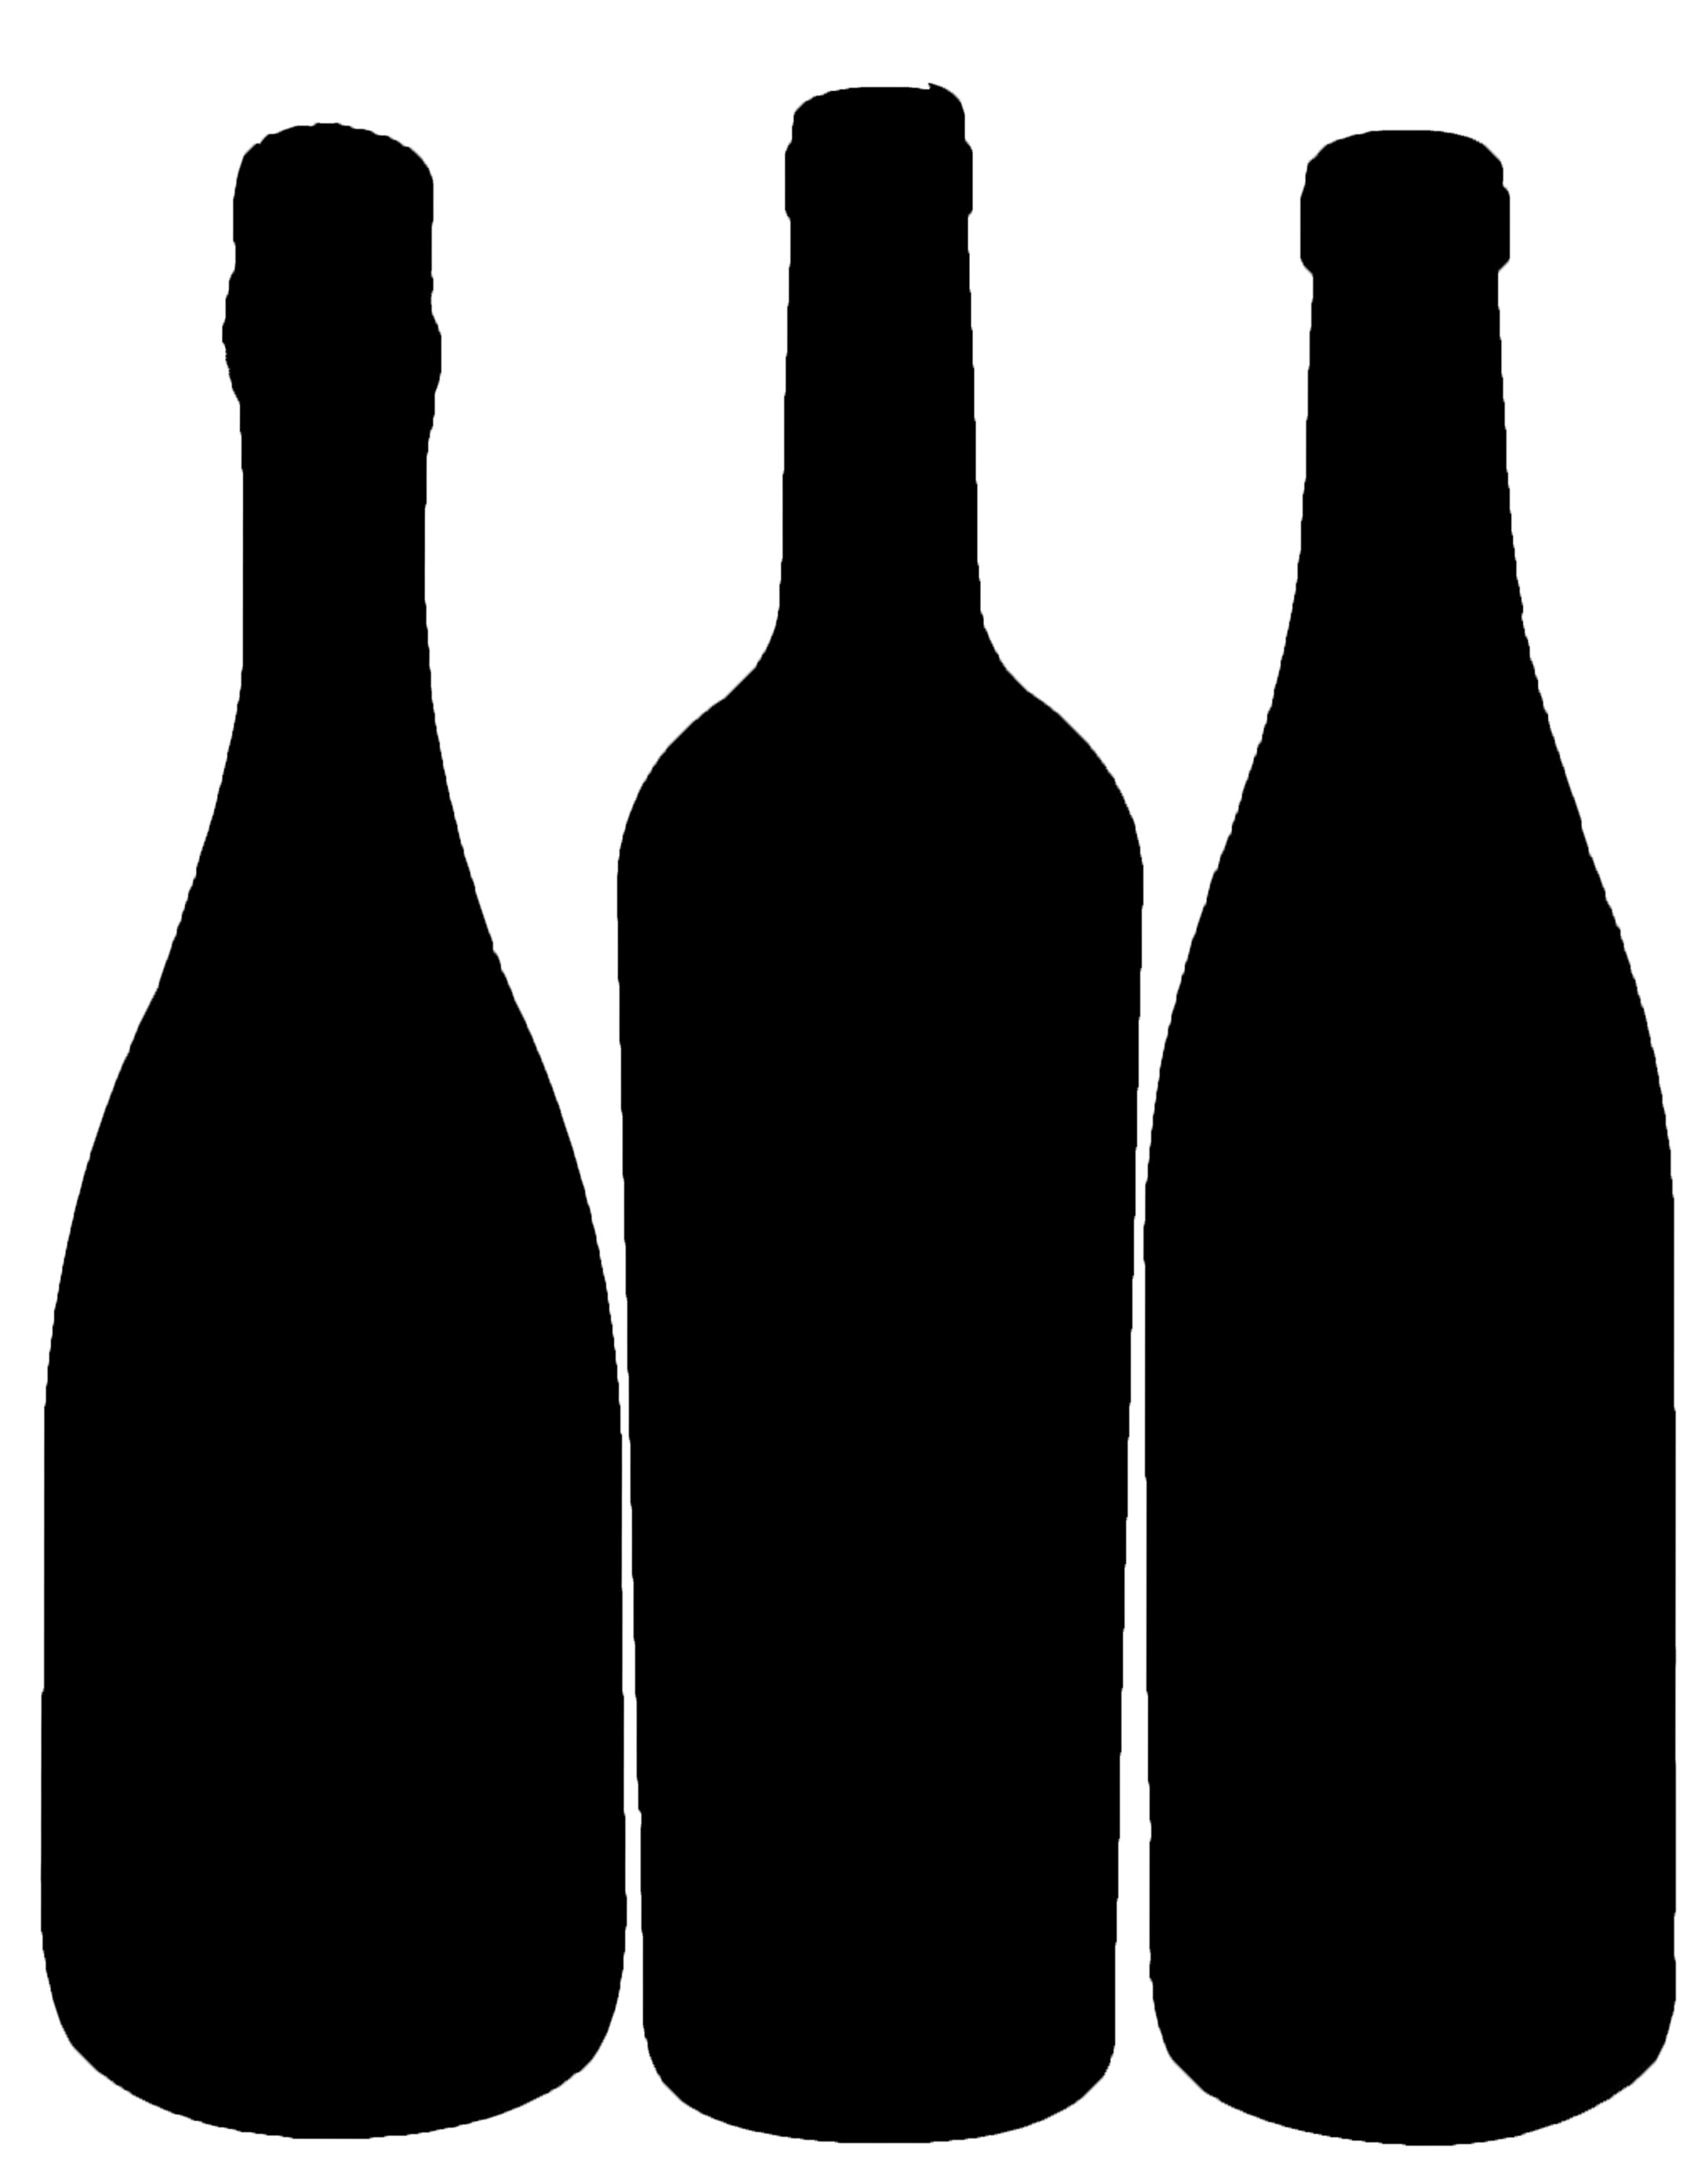 beer bottle silhouette beer bottle vector silhouette at getdrawings free download silhouette beer bottle